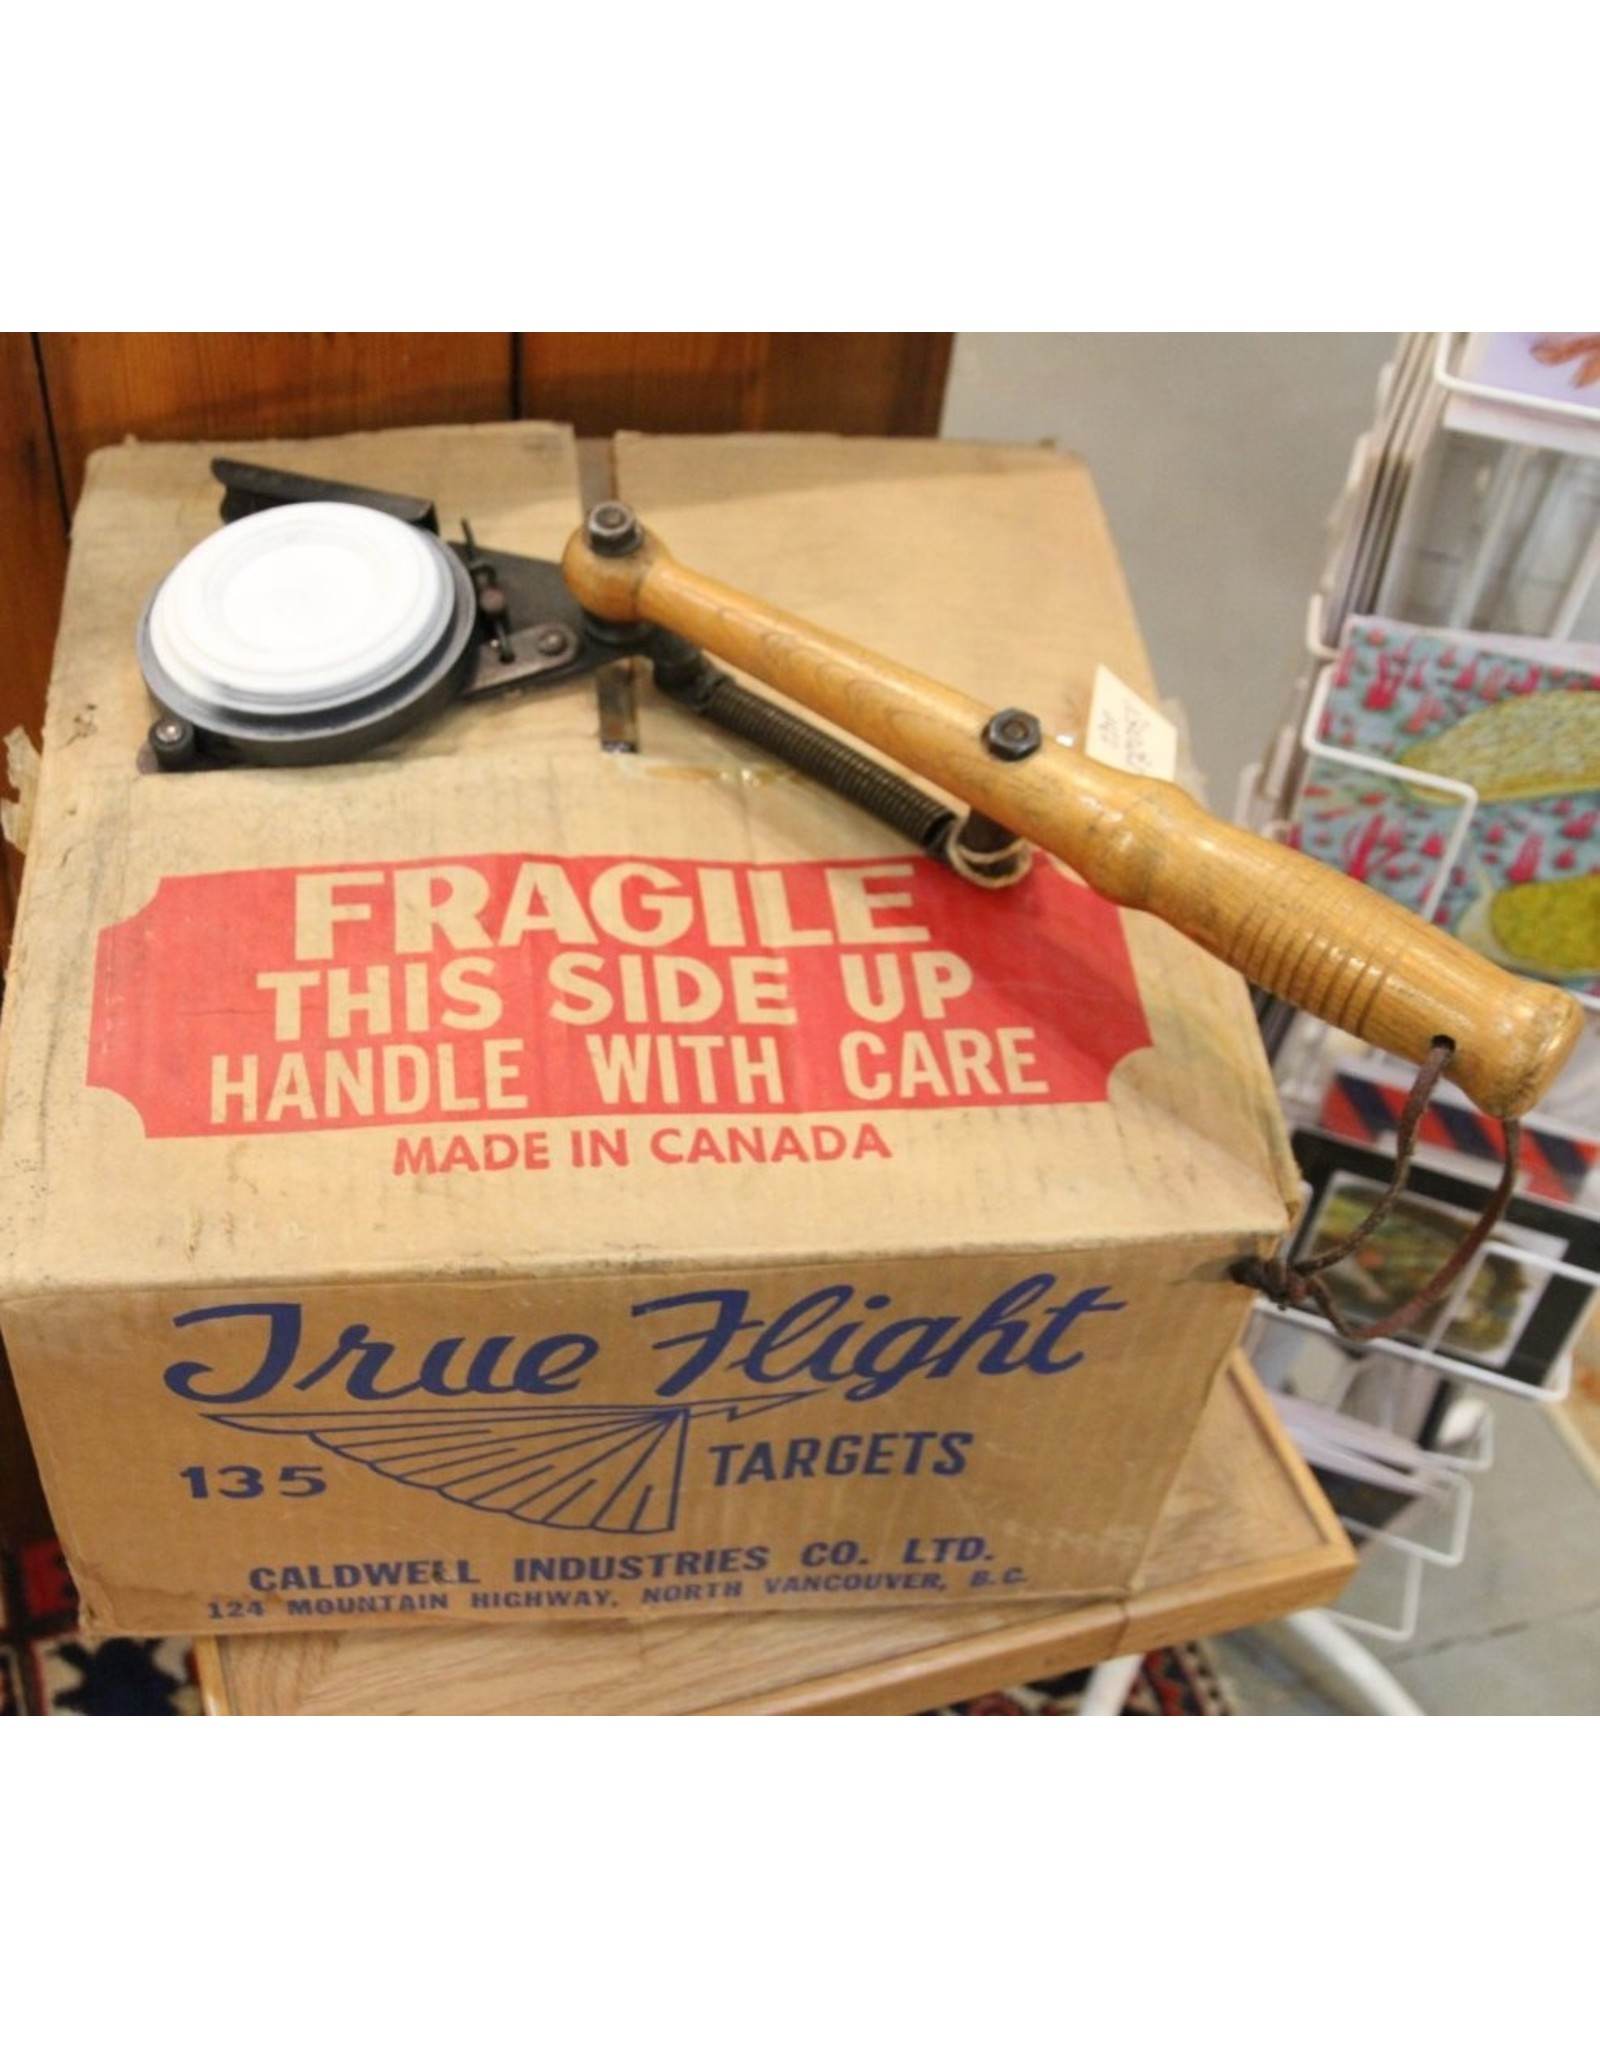 Clay pigeon thrower - hand held, plus box of clay pigeons